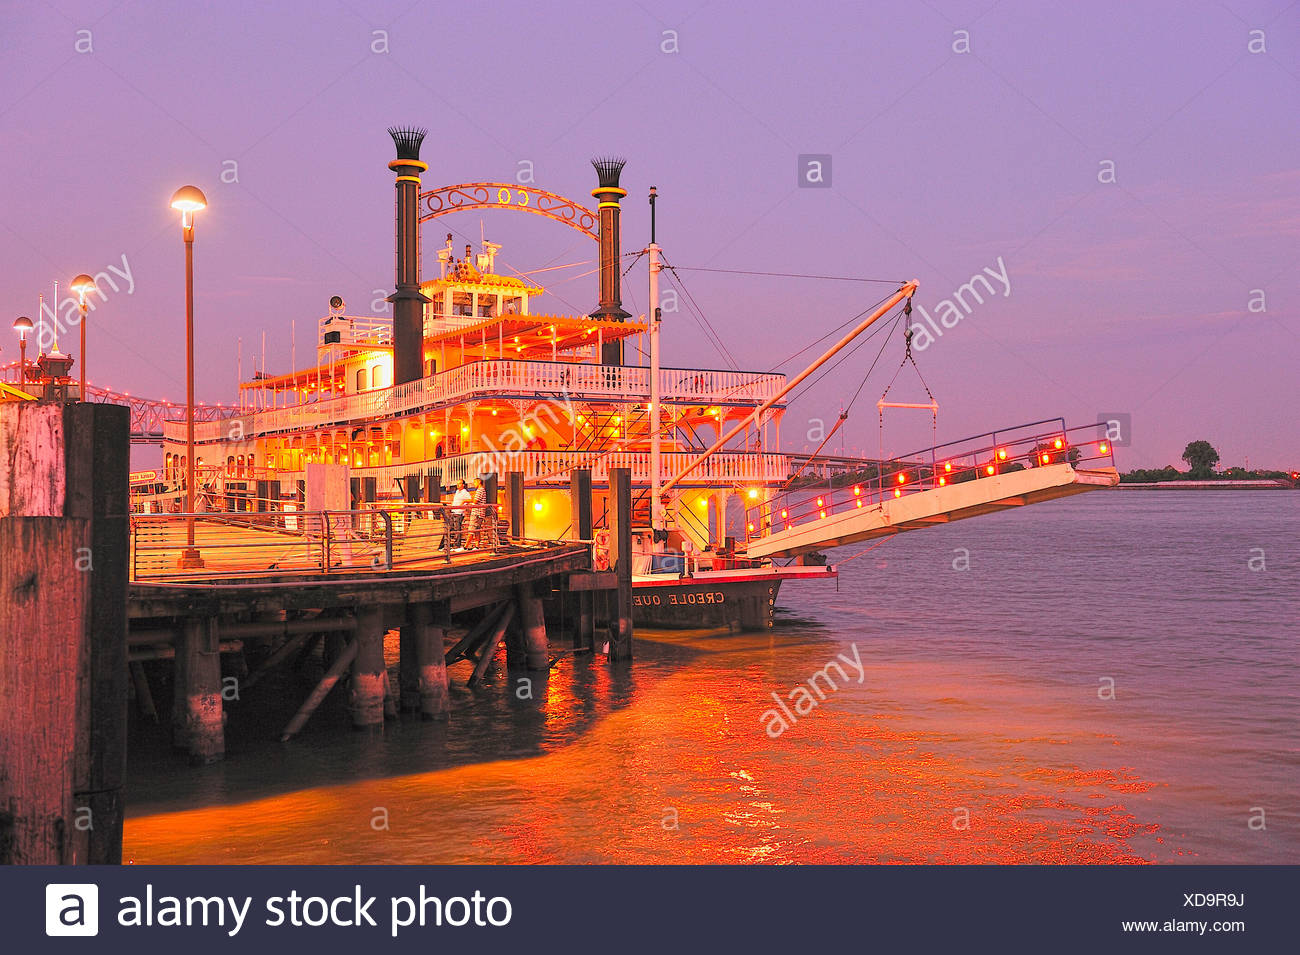 River Queen Paddle Steamer Stock Photos Amp River Queen Paddle Steamer Stock Images Alamy